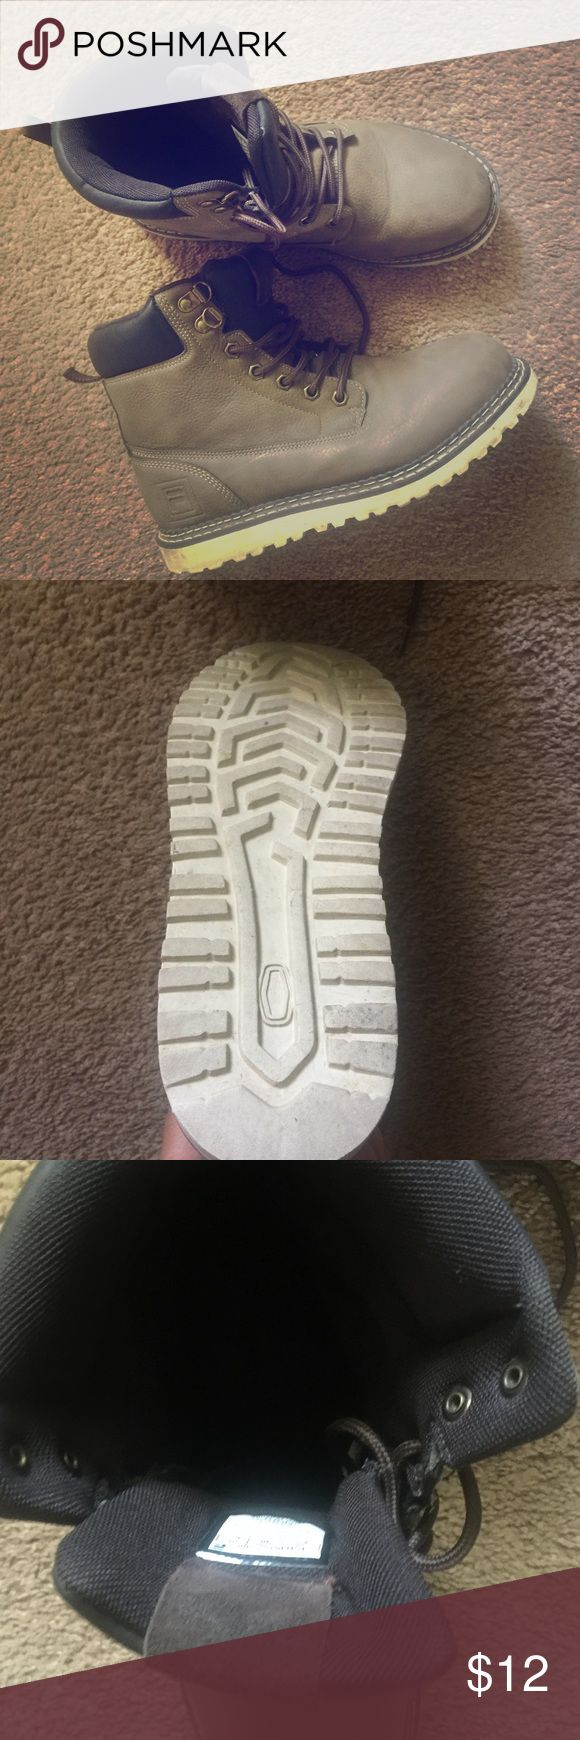 Fila Boots Good condition, just a couple knicks in front (pictured) but very lightly worn Fila Shoes Boots